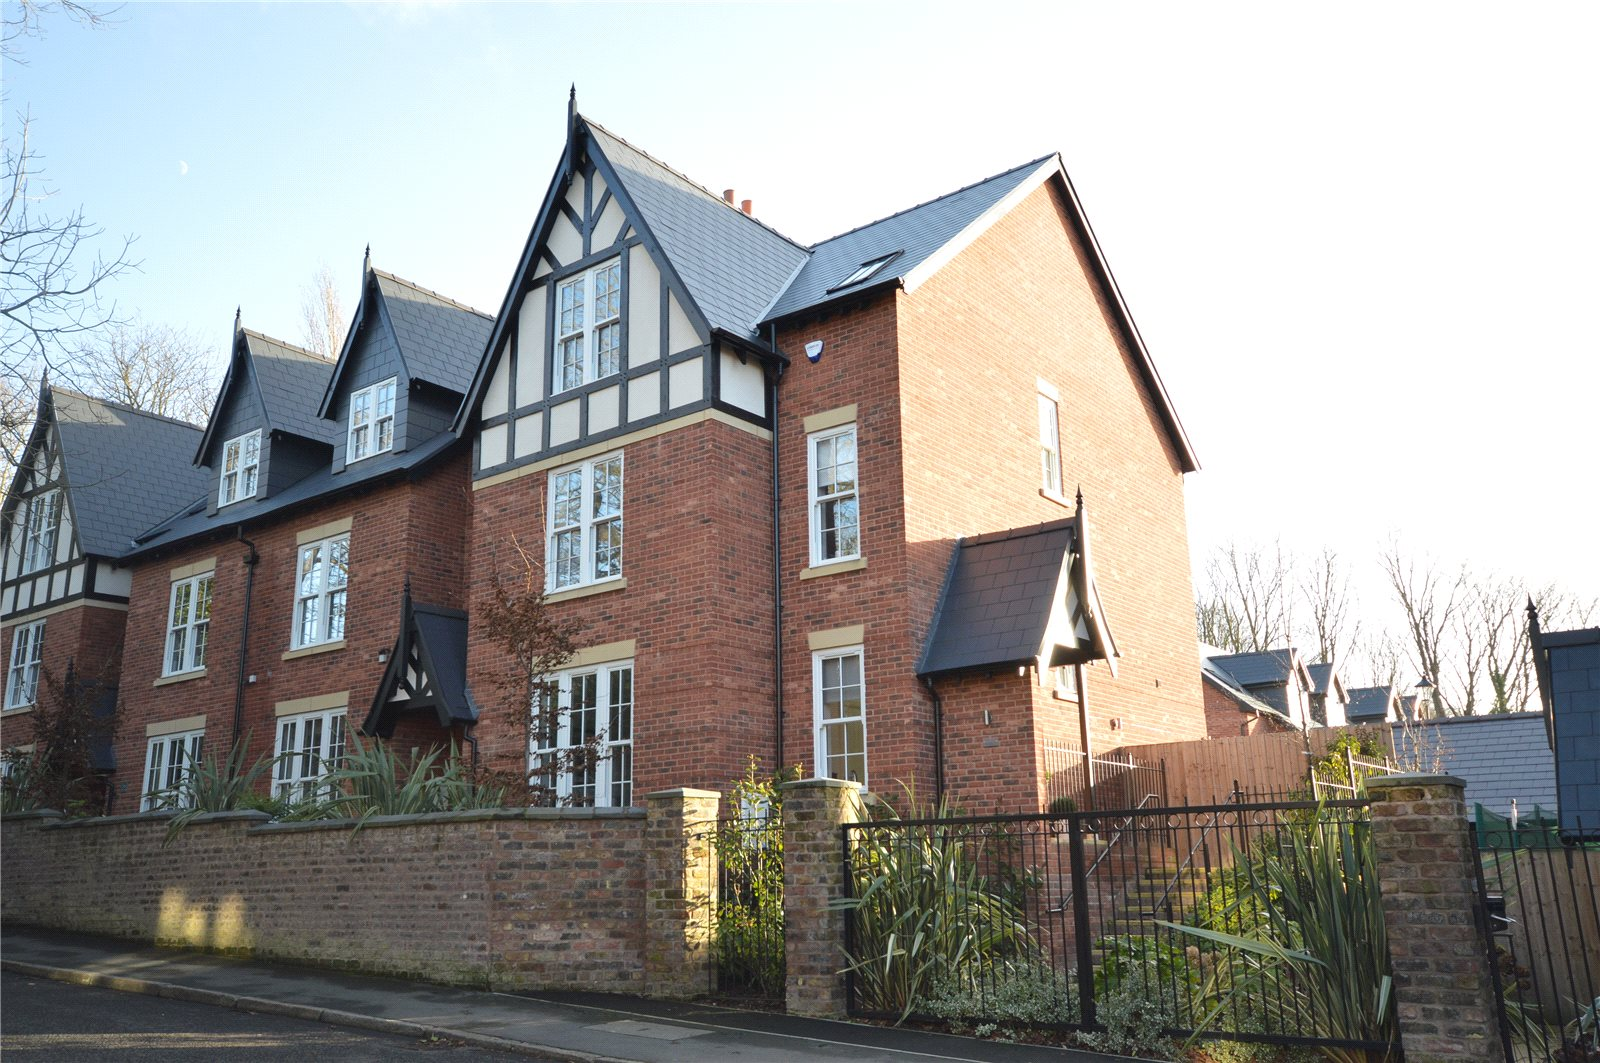 5 Bedrooms End Of Terrace House for sale in Carnatic Road, Mossley Hill, Liverpool, L18